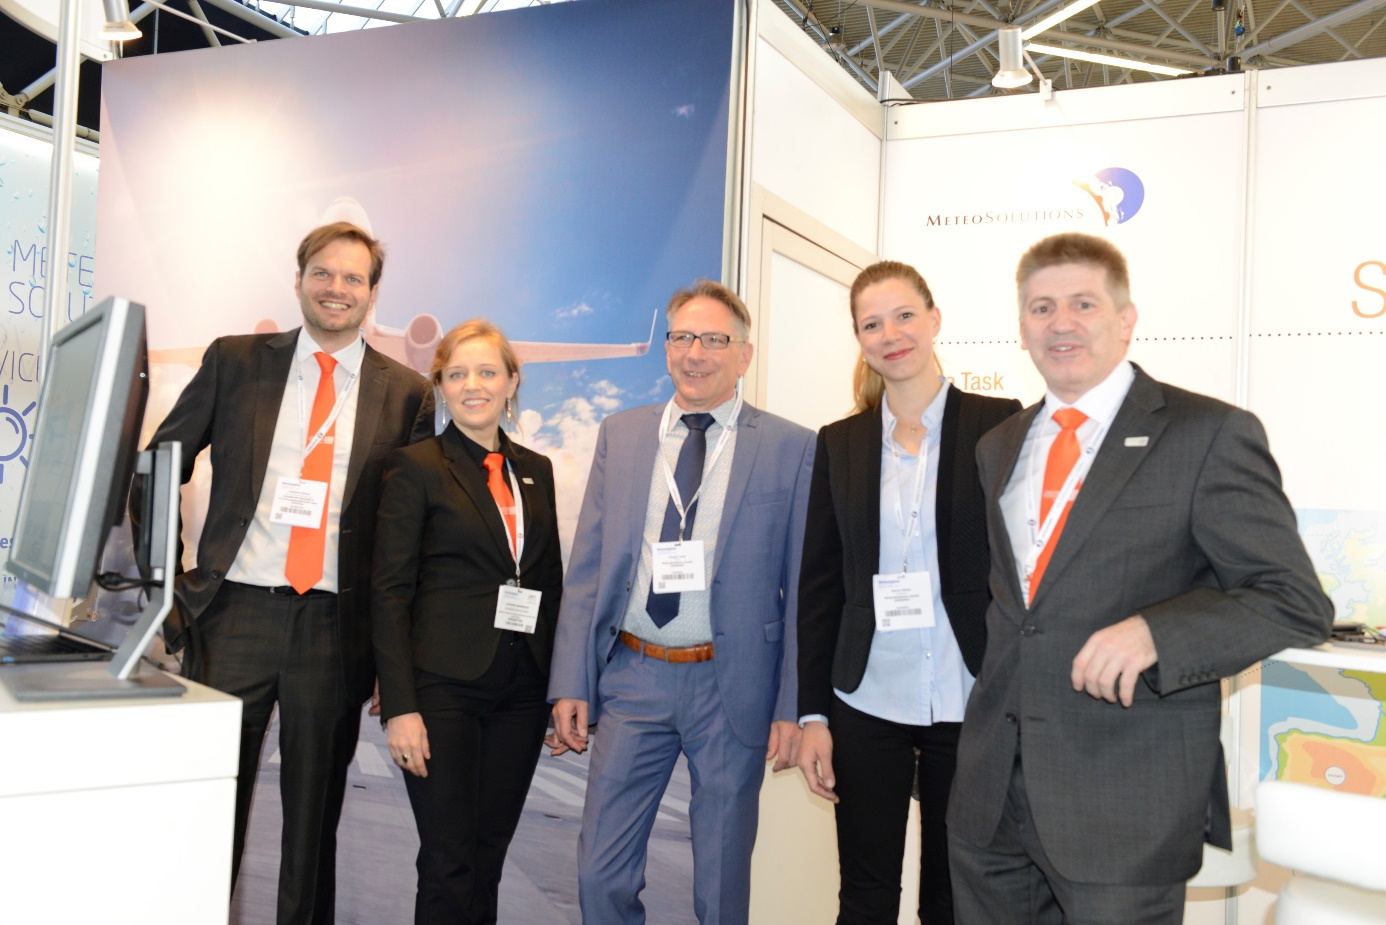 MeteoSolutions at the MTWE 2018 in Amsterdam